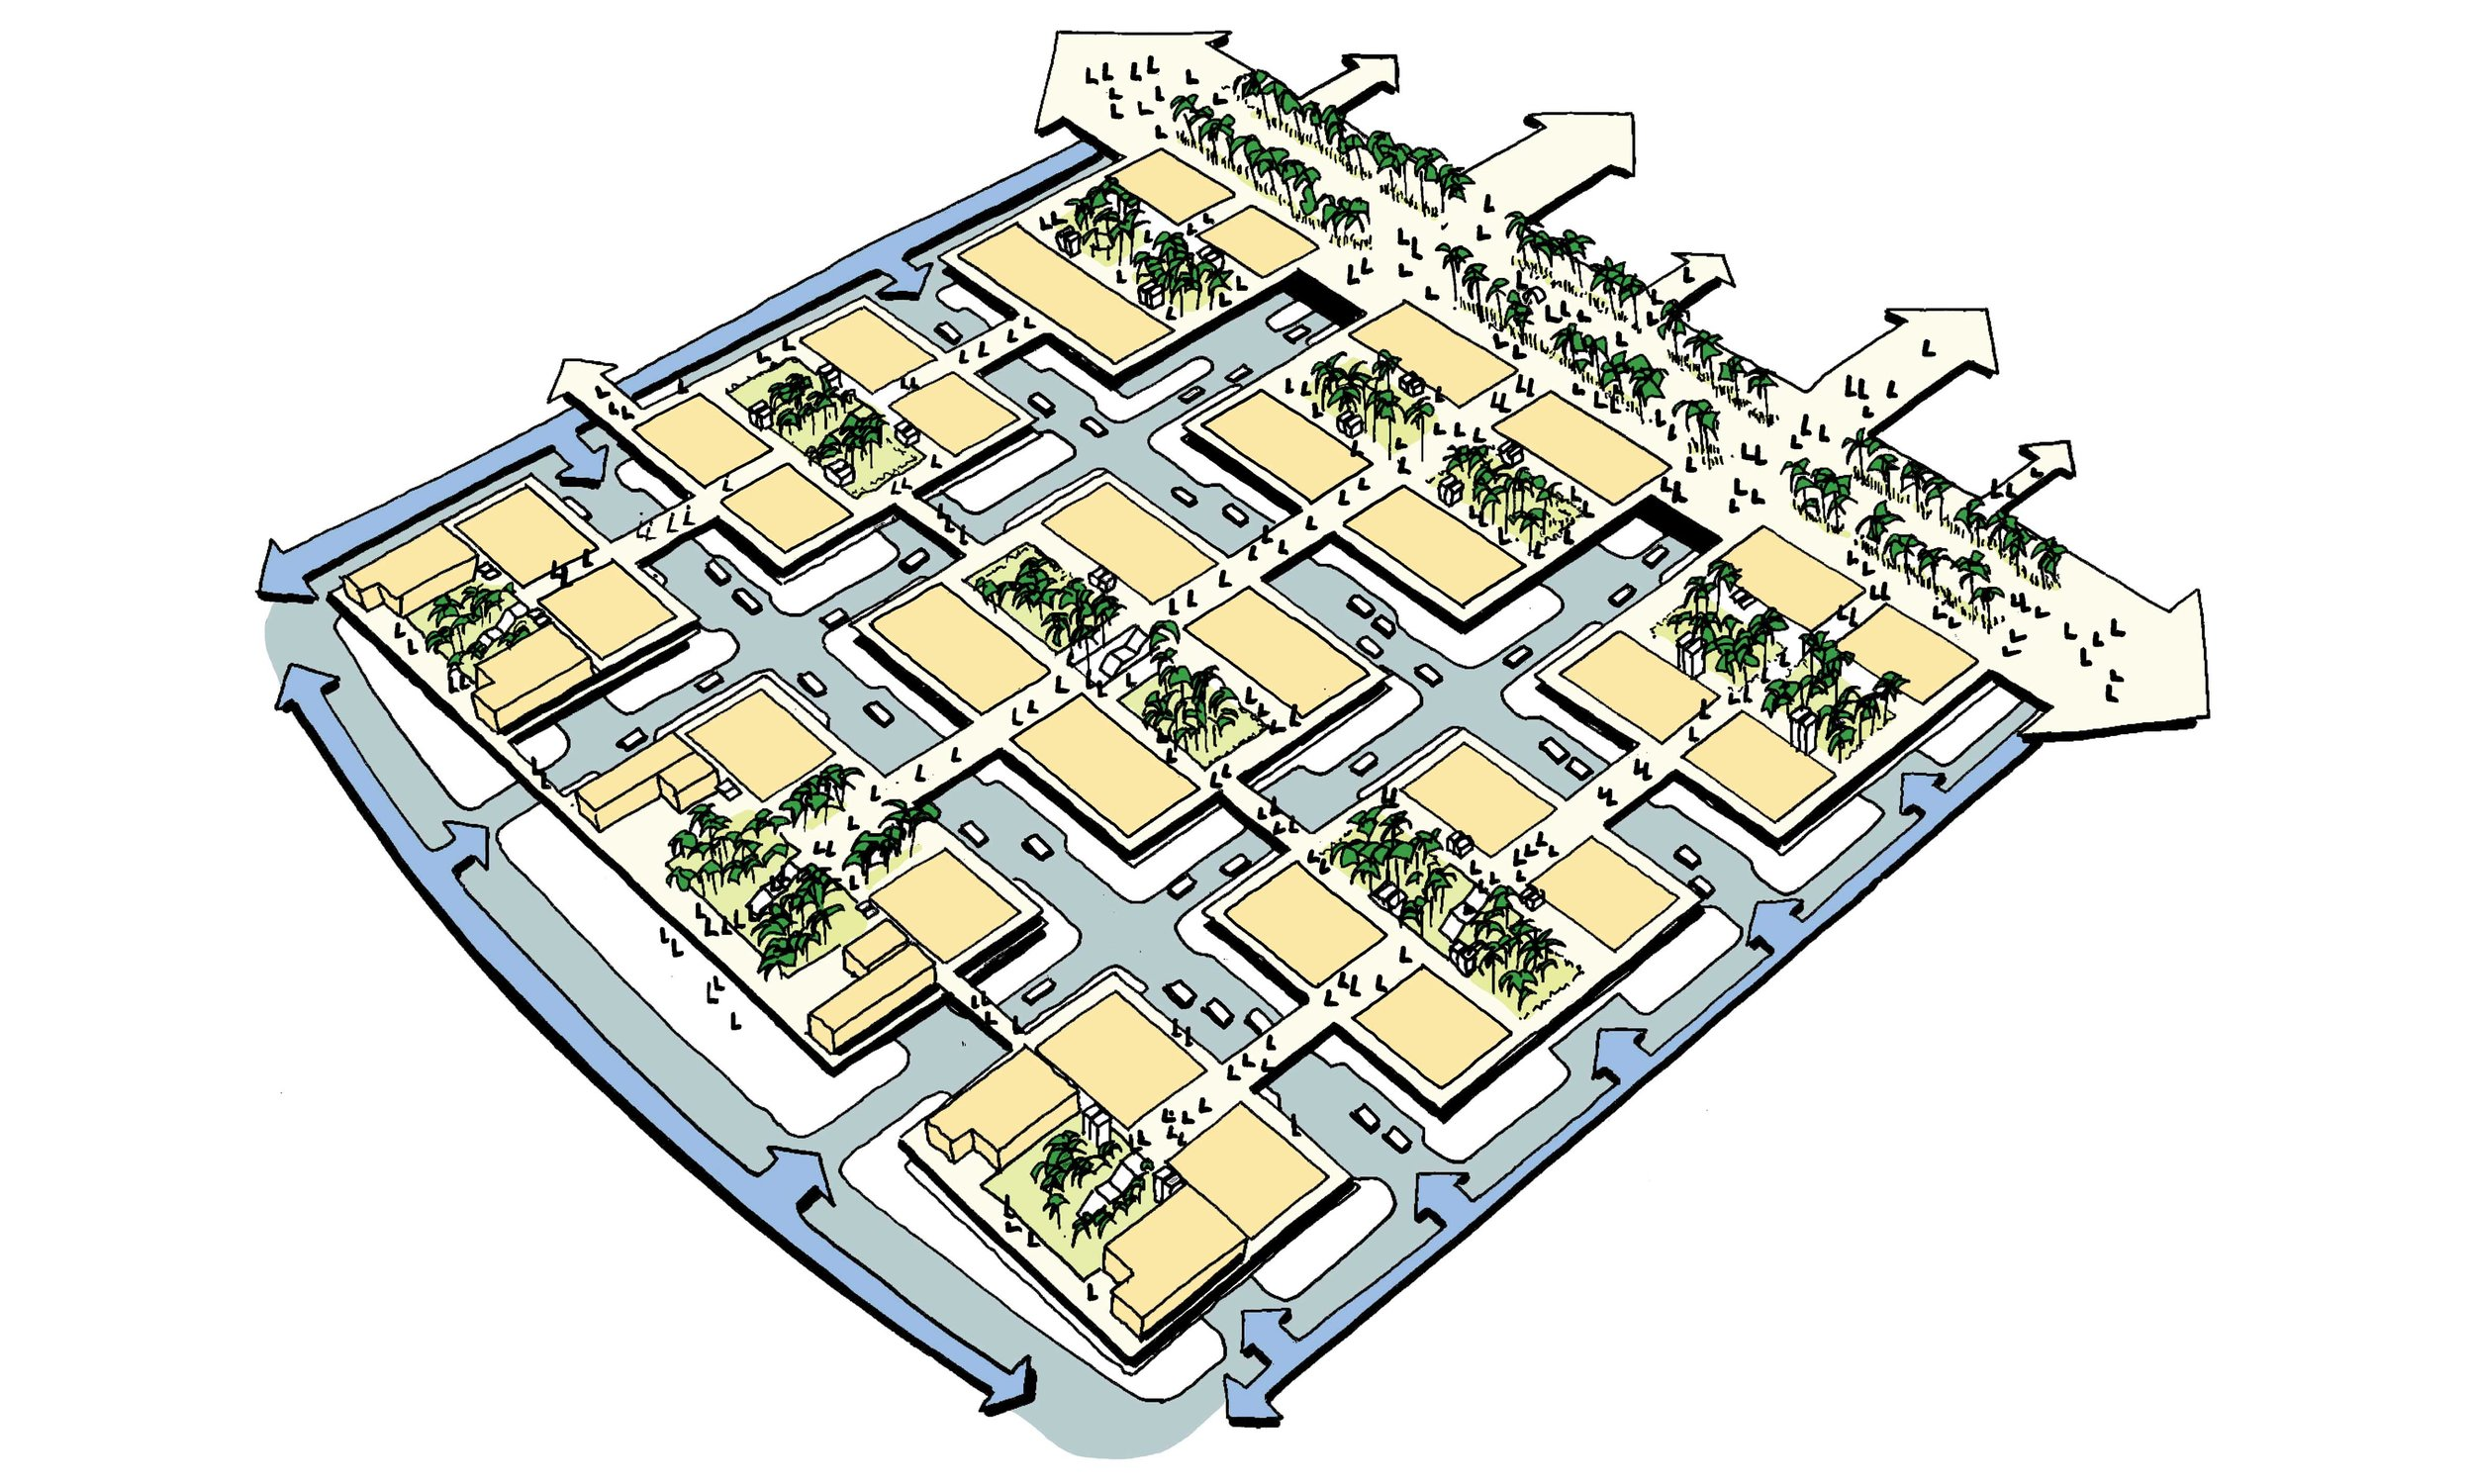 The fareej inspired buildings come together to form distinct communities within the masterplan.